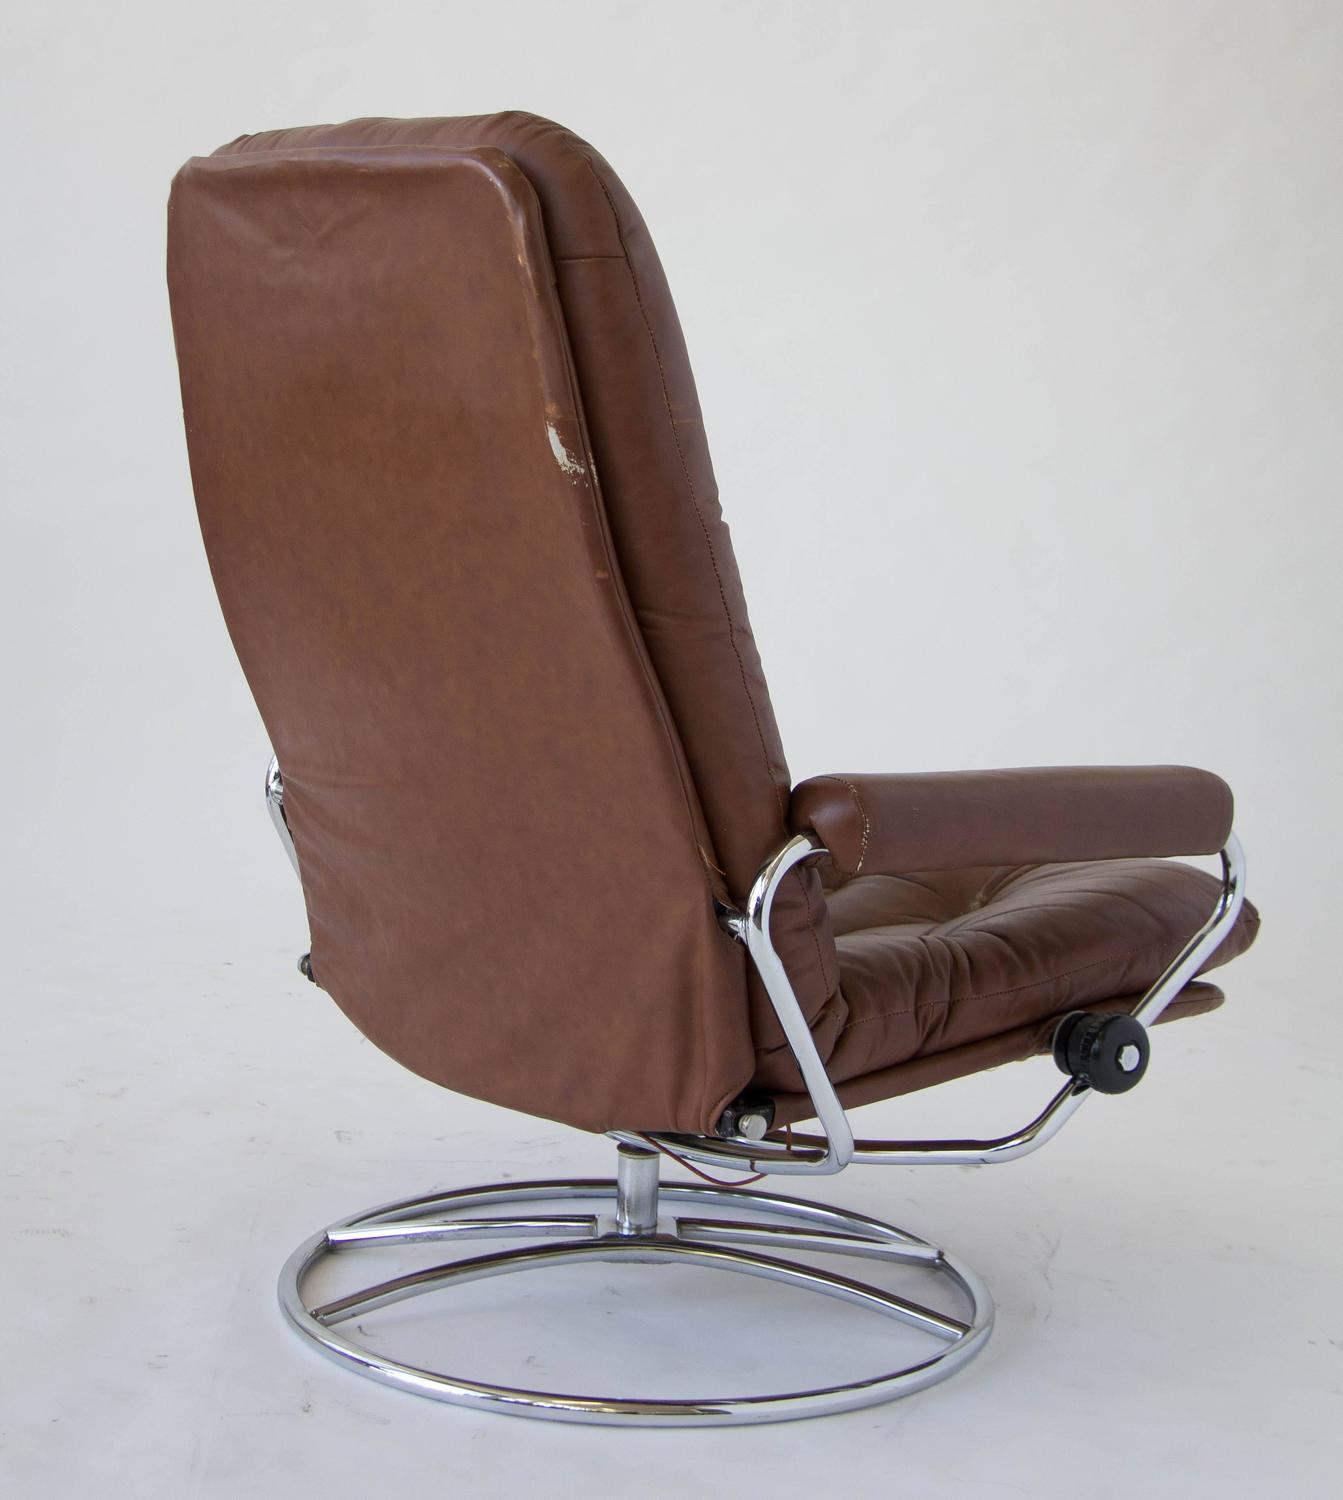 Ekornes Chairs Ekornes Stressless Chair And Ottoman For Sale At 1stdibs